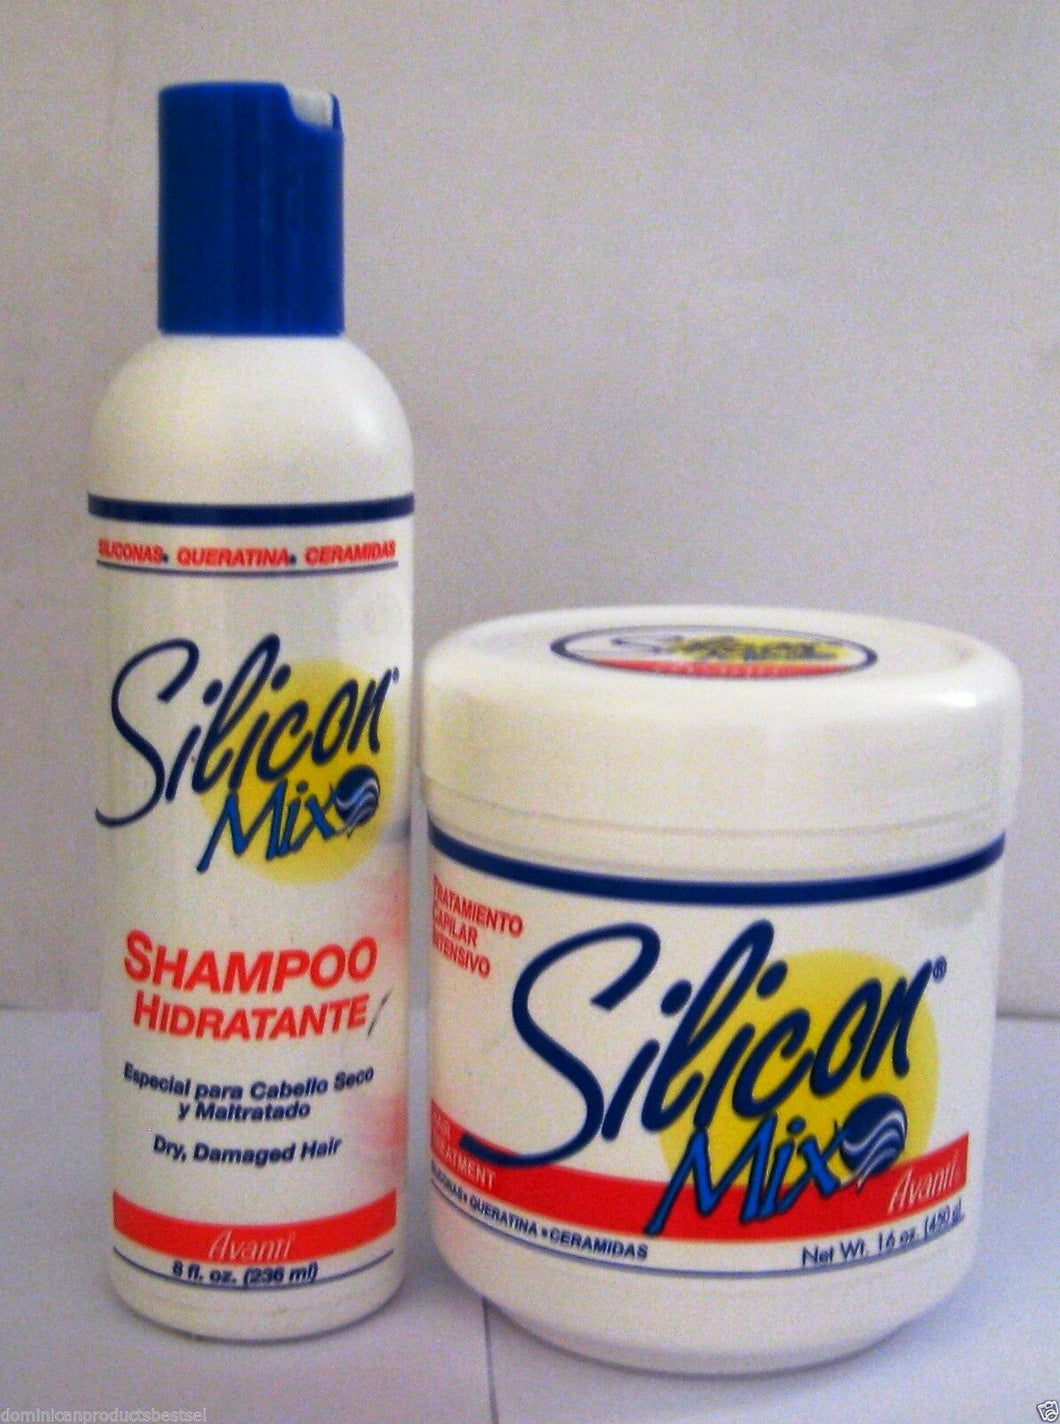 SILICON MIX 16 OZ HAIR TREATMENT + SHAMPOO 8 OZ HAIR GROWTH FRETE GRATIS BRASIL